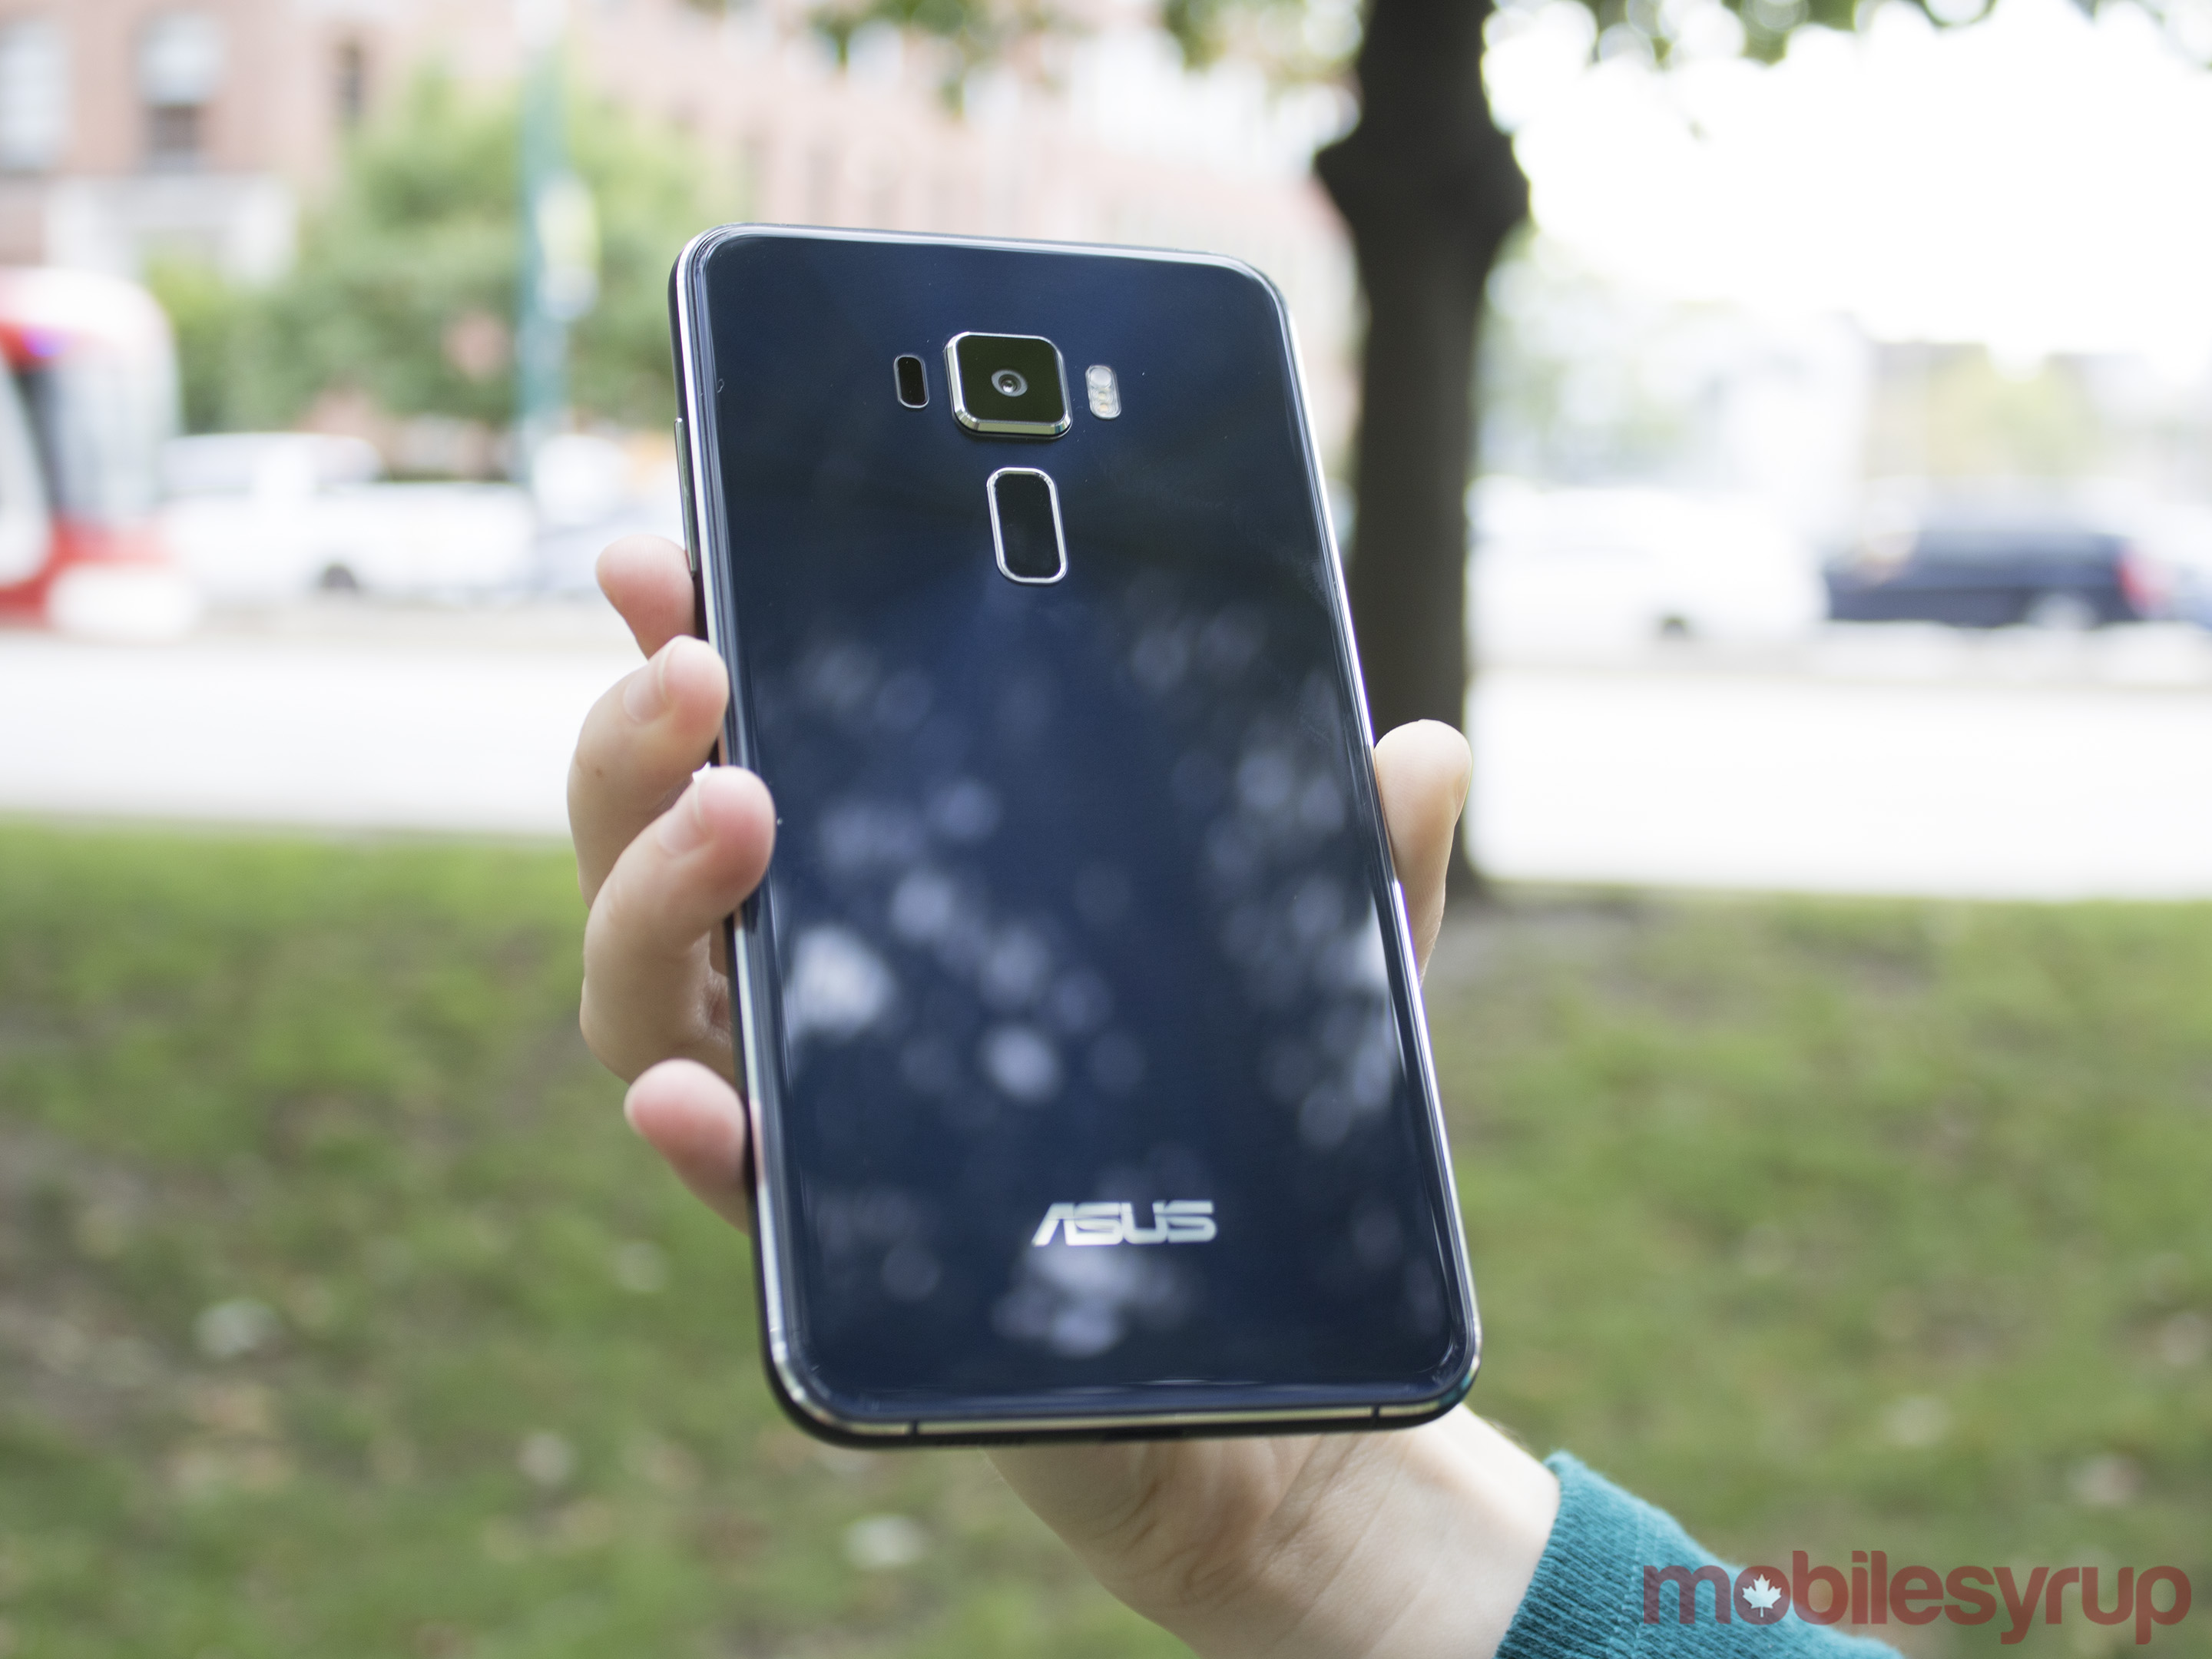 Asus Zenfone 3 review: The best mid-range camera experience